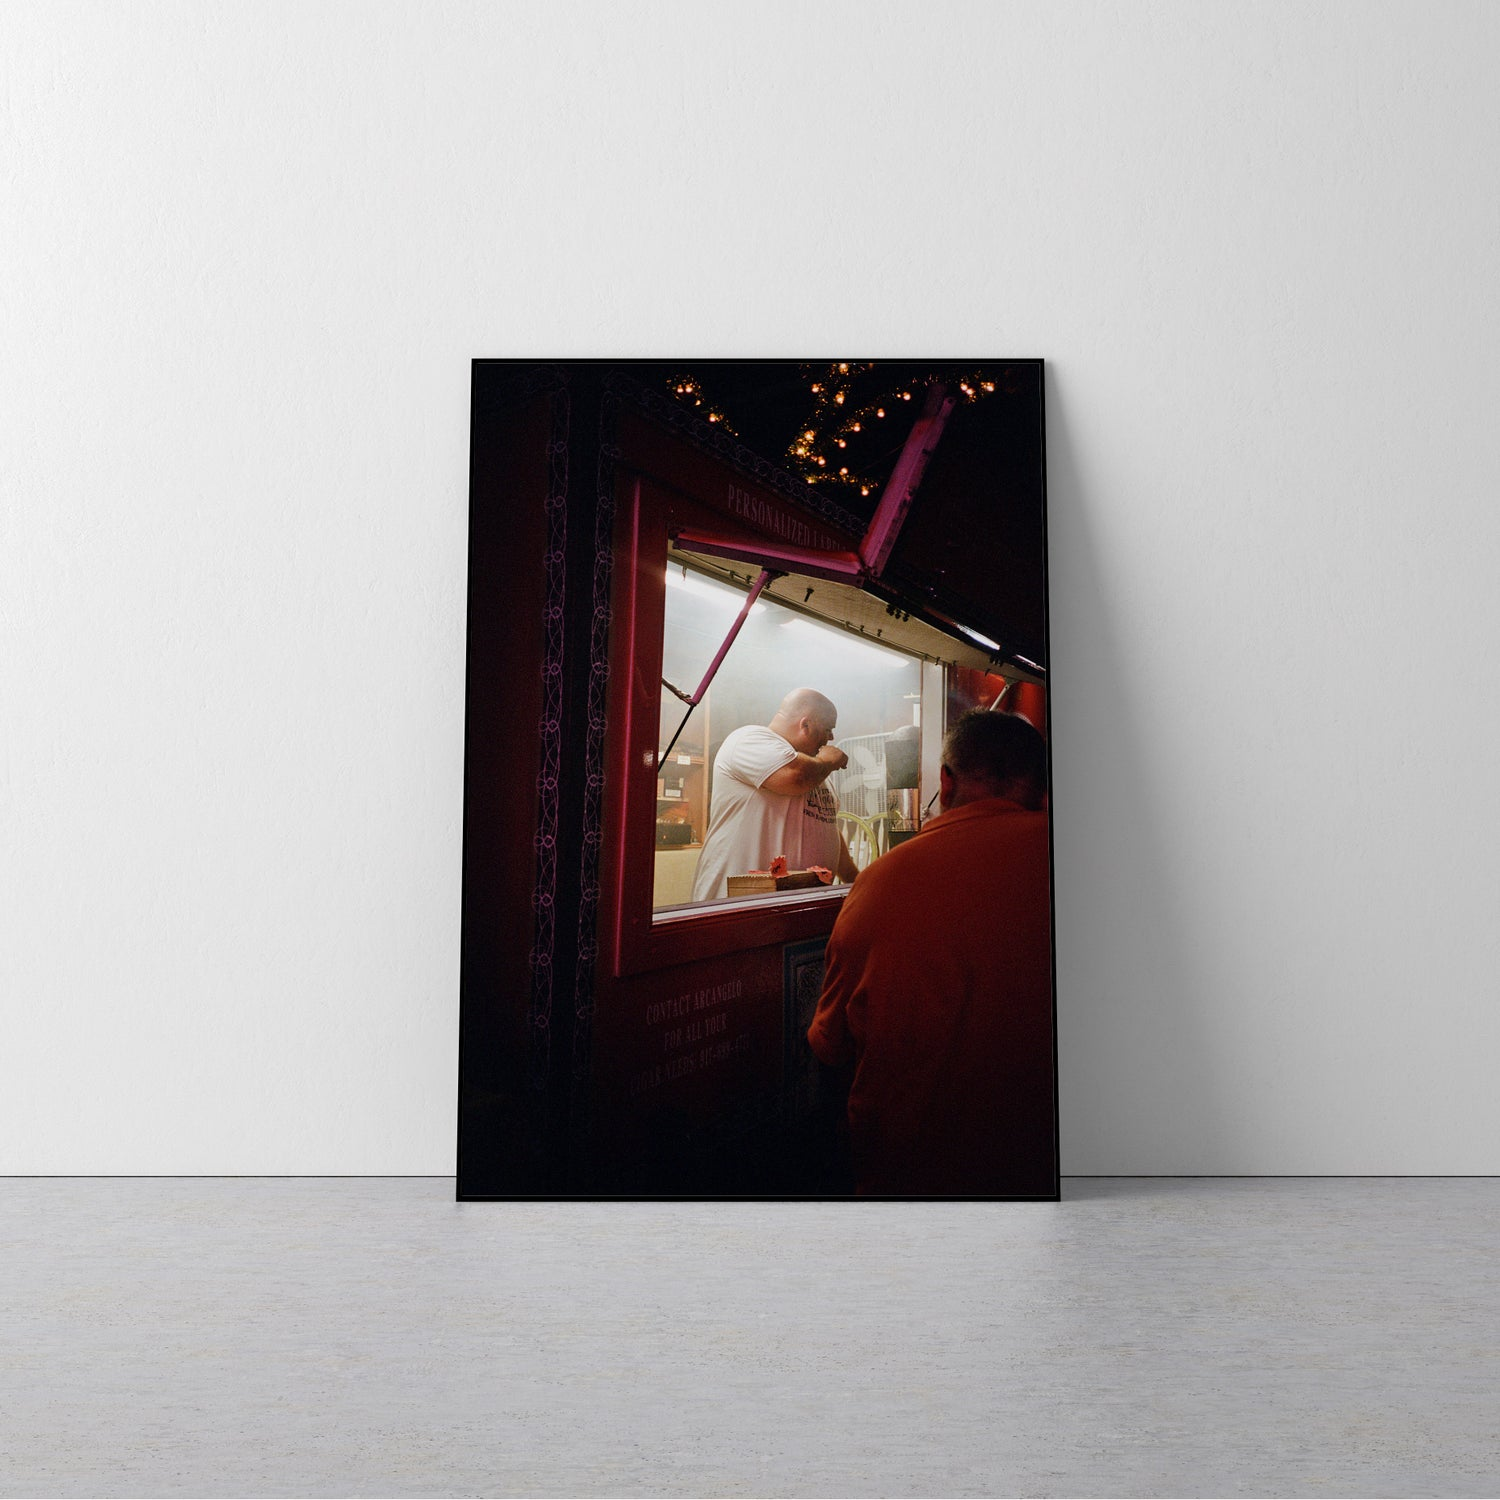 Image of 'CIGAR STAND MAN' 24x36 POSTER